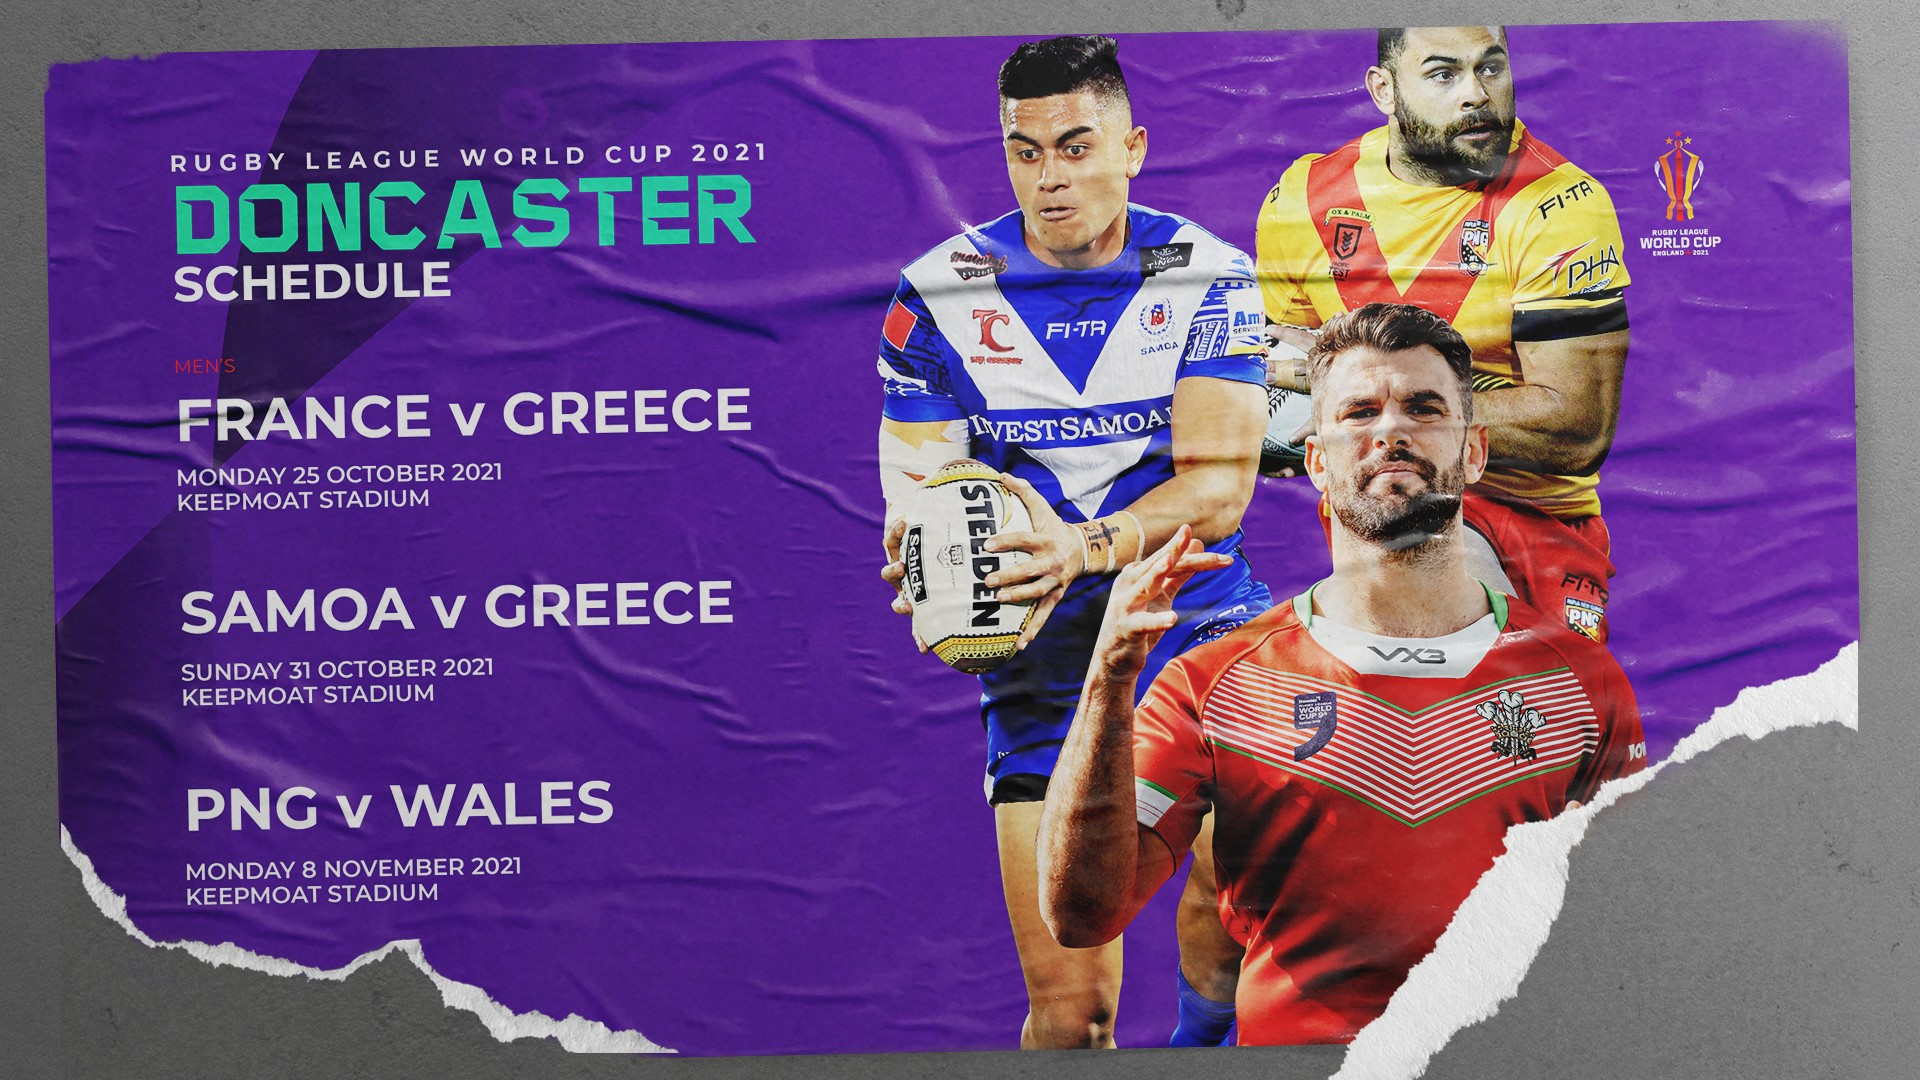 Rugby League World Cup 2021 Doncaster Schedule